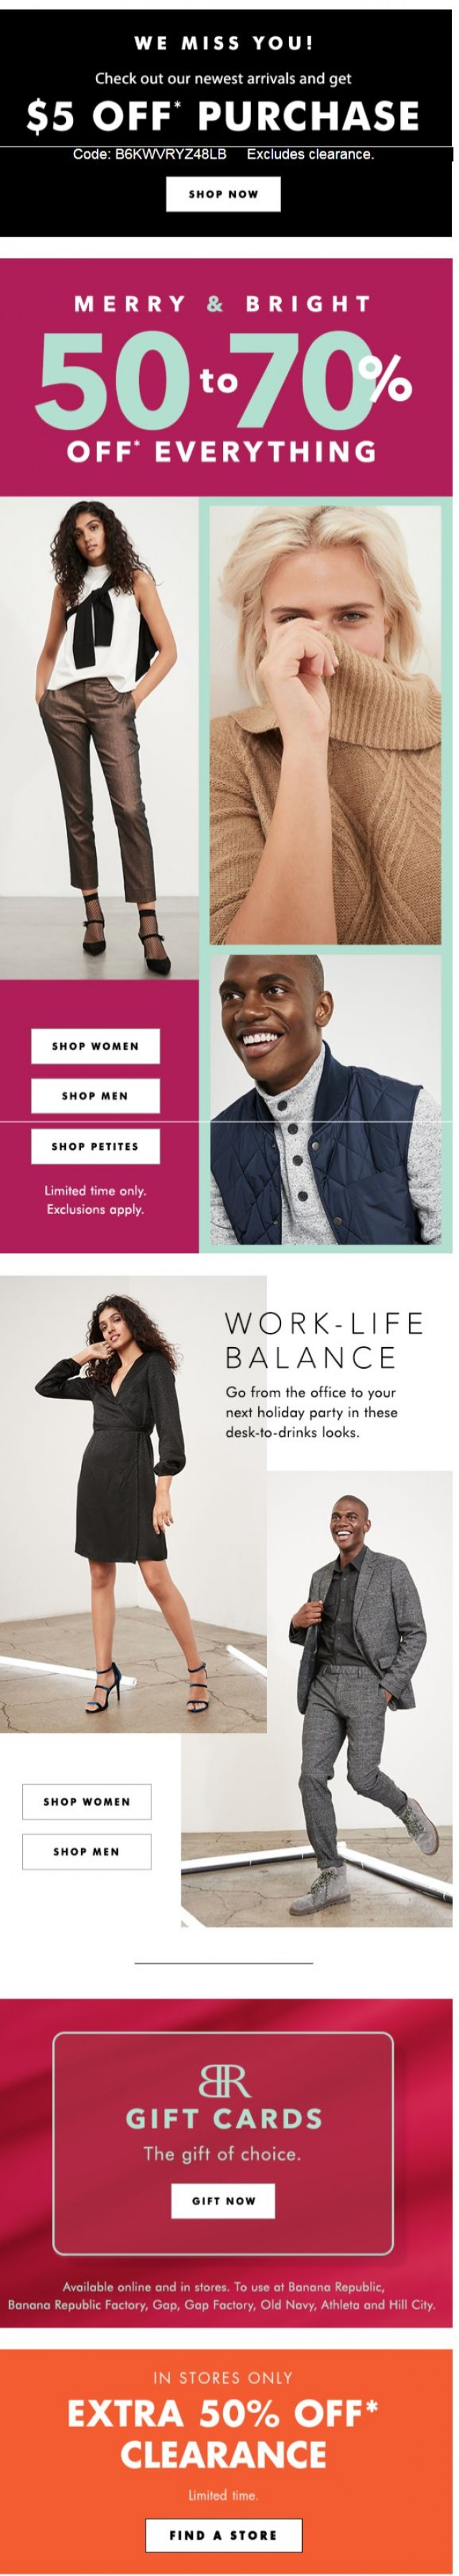 Coupon for: Banana Republic Factory - E-V-E-R-Y-T-H-I-N-G is 50-70% OFF (no, we're not joking)! Act ASAP before the holidays!